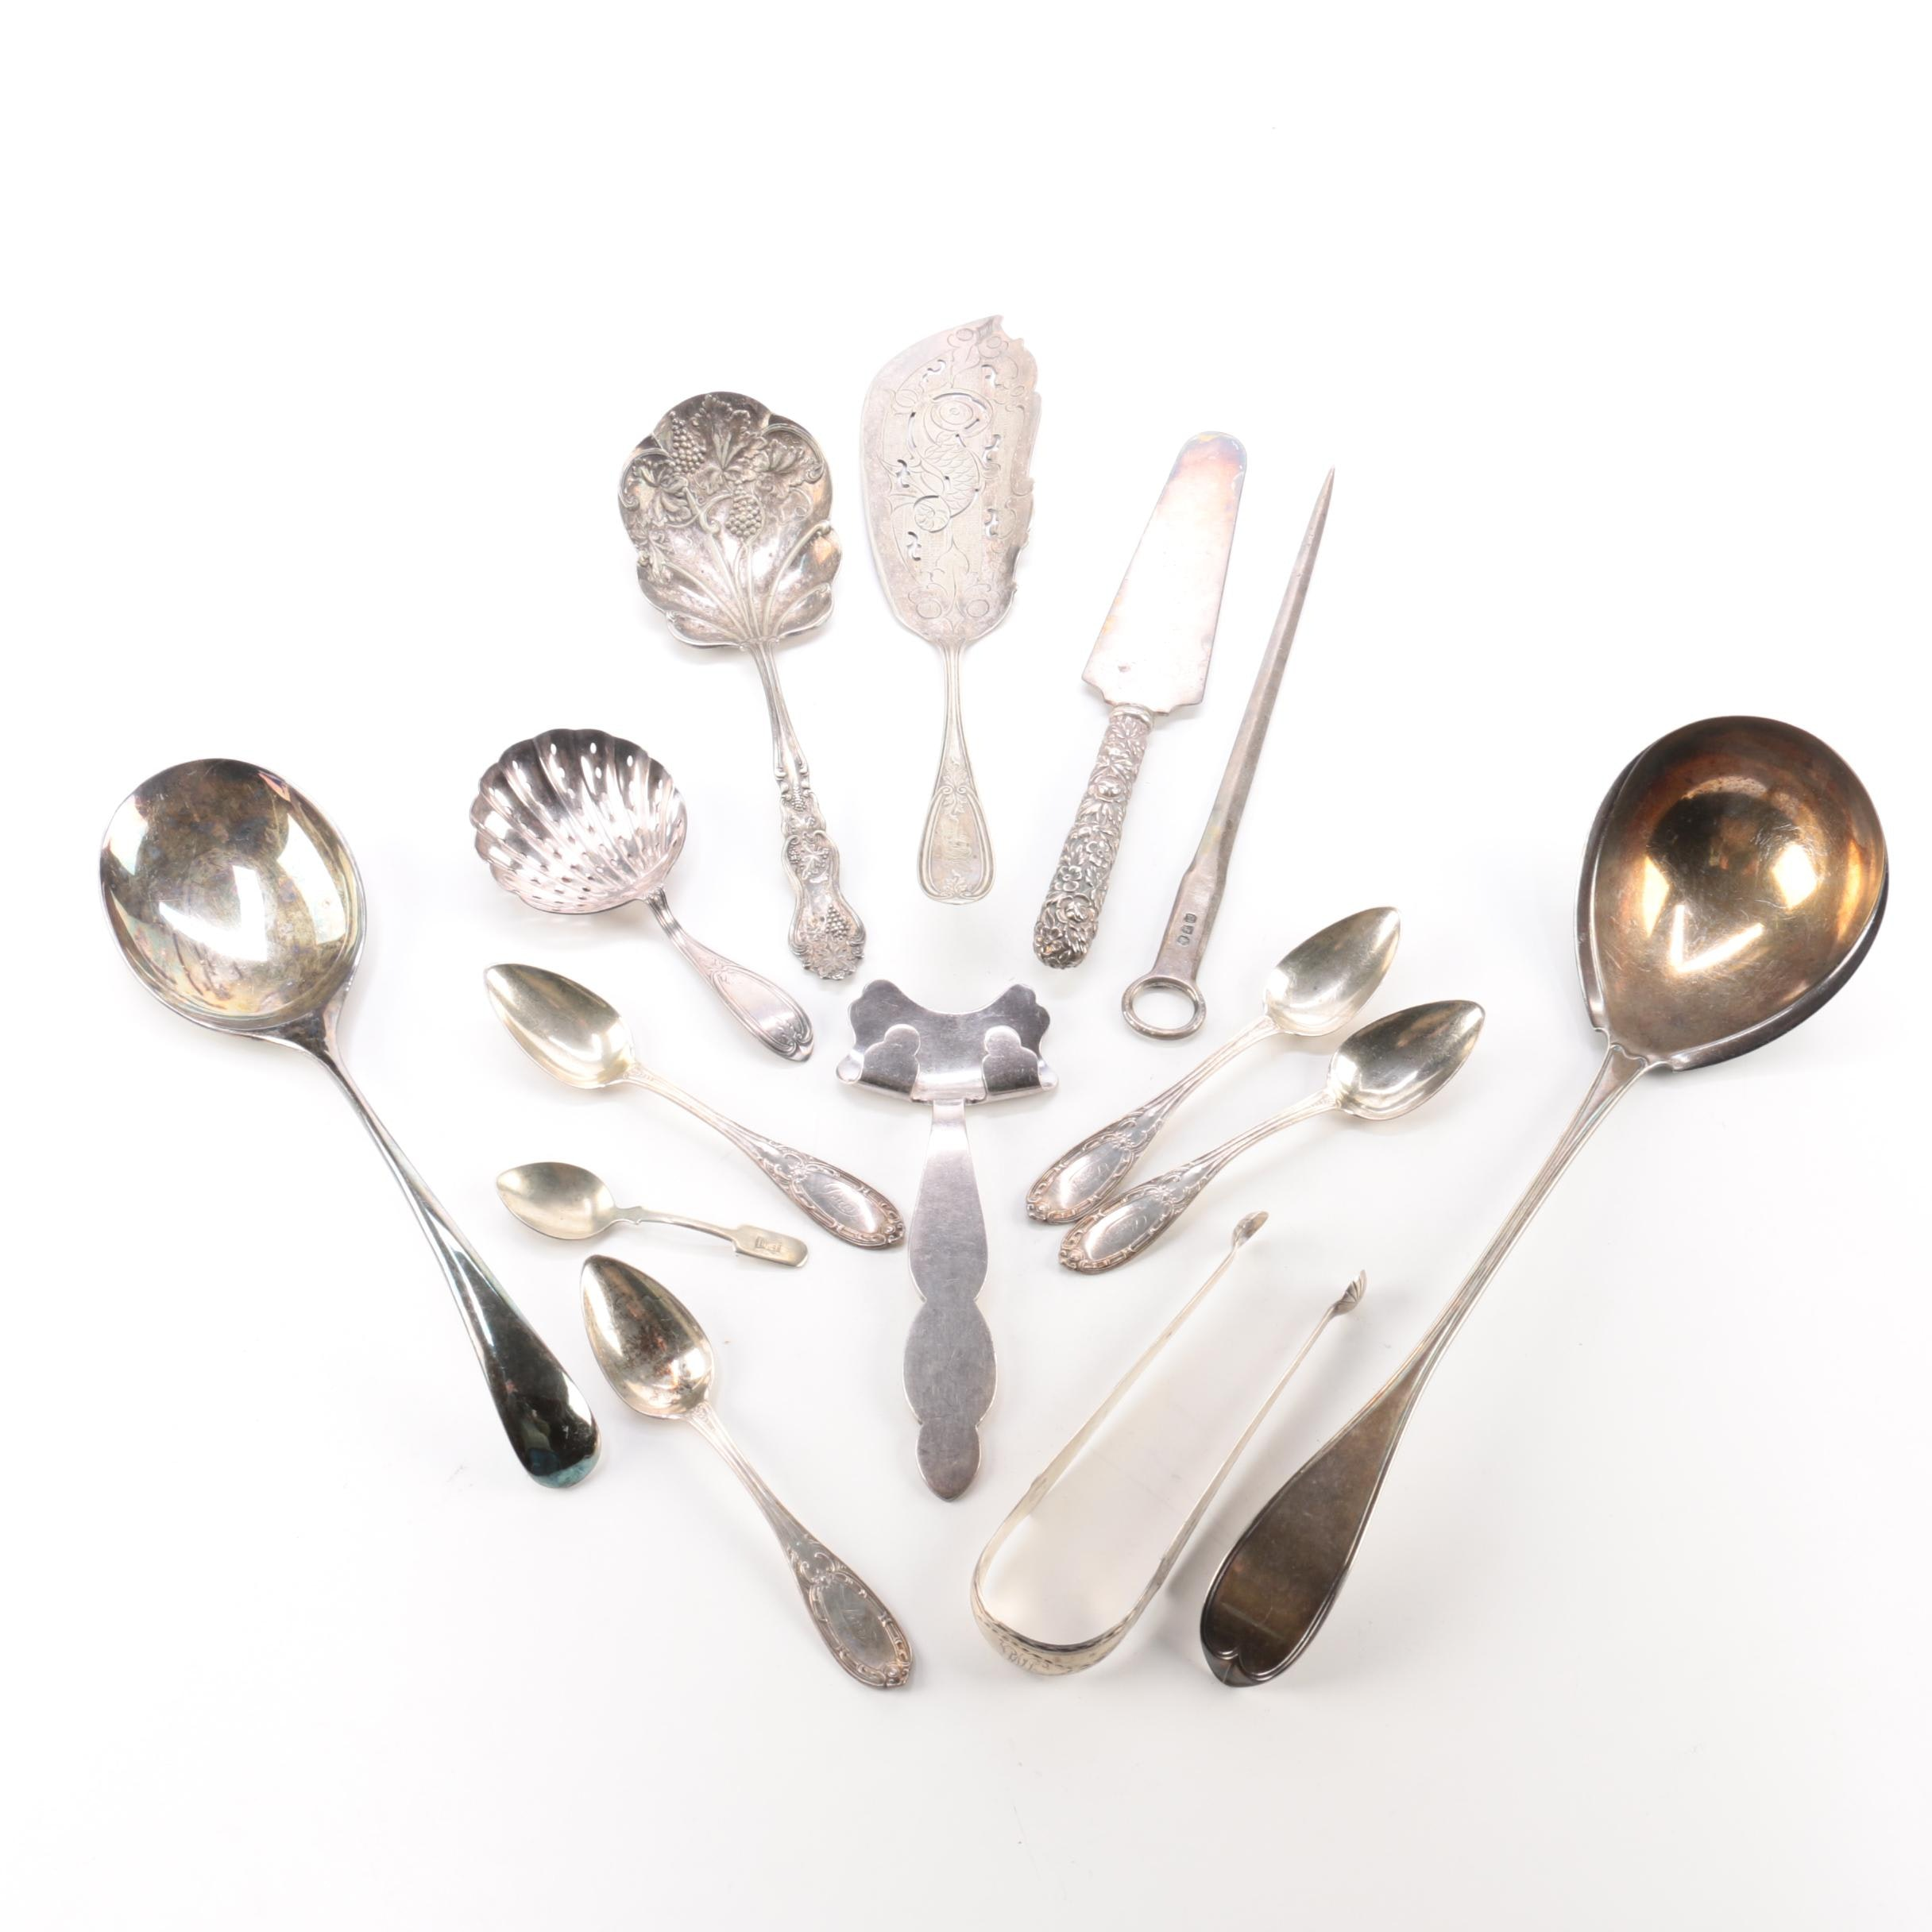 Silver Plate Flatware and Serving Utensils Featuring Gorham